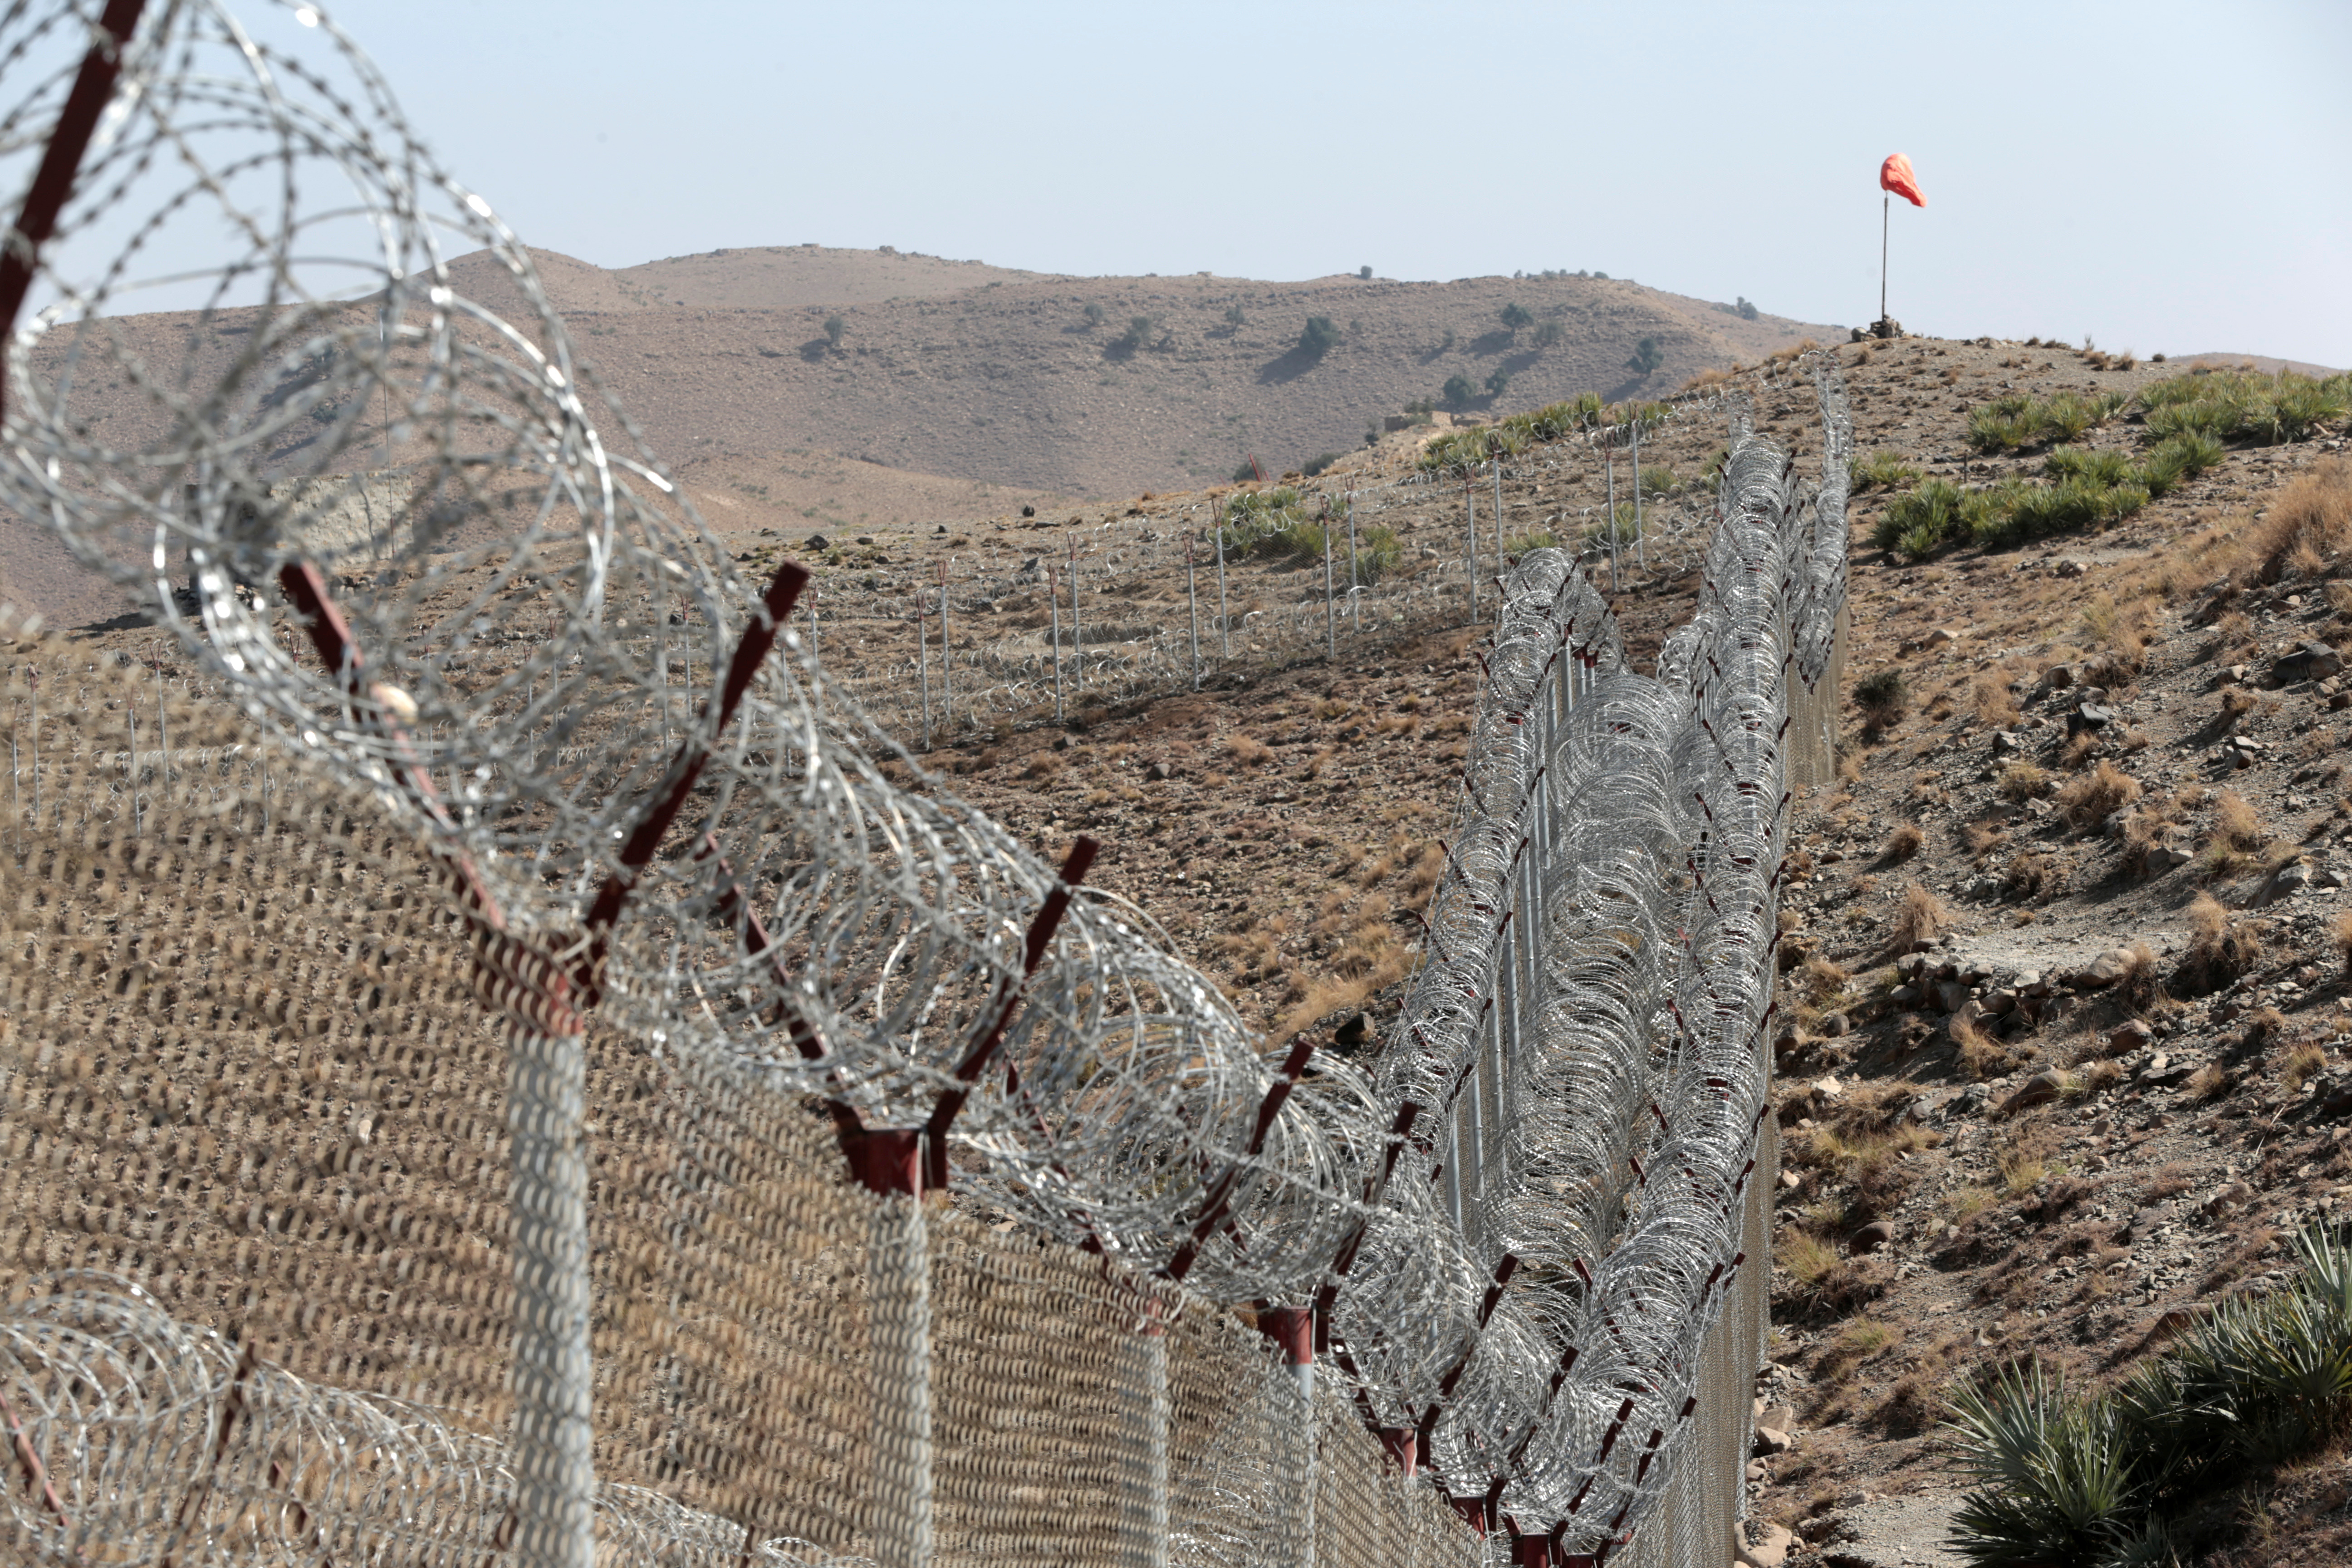 A view of the border fence outside the Kitton outpost on the border with Afghanistan in North Waziristan, Pakistan, Oct. 18, 2017.